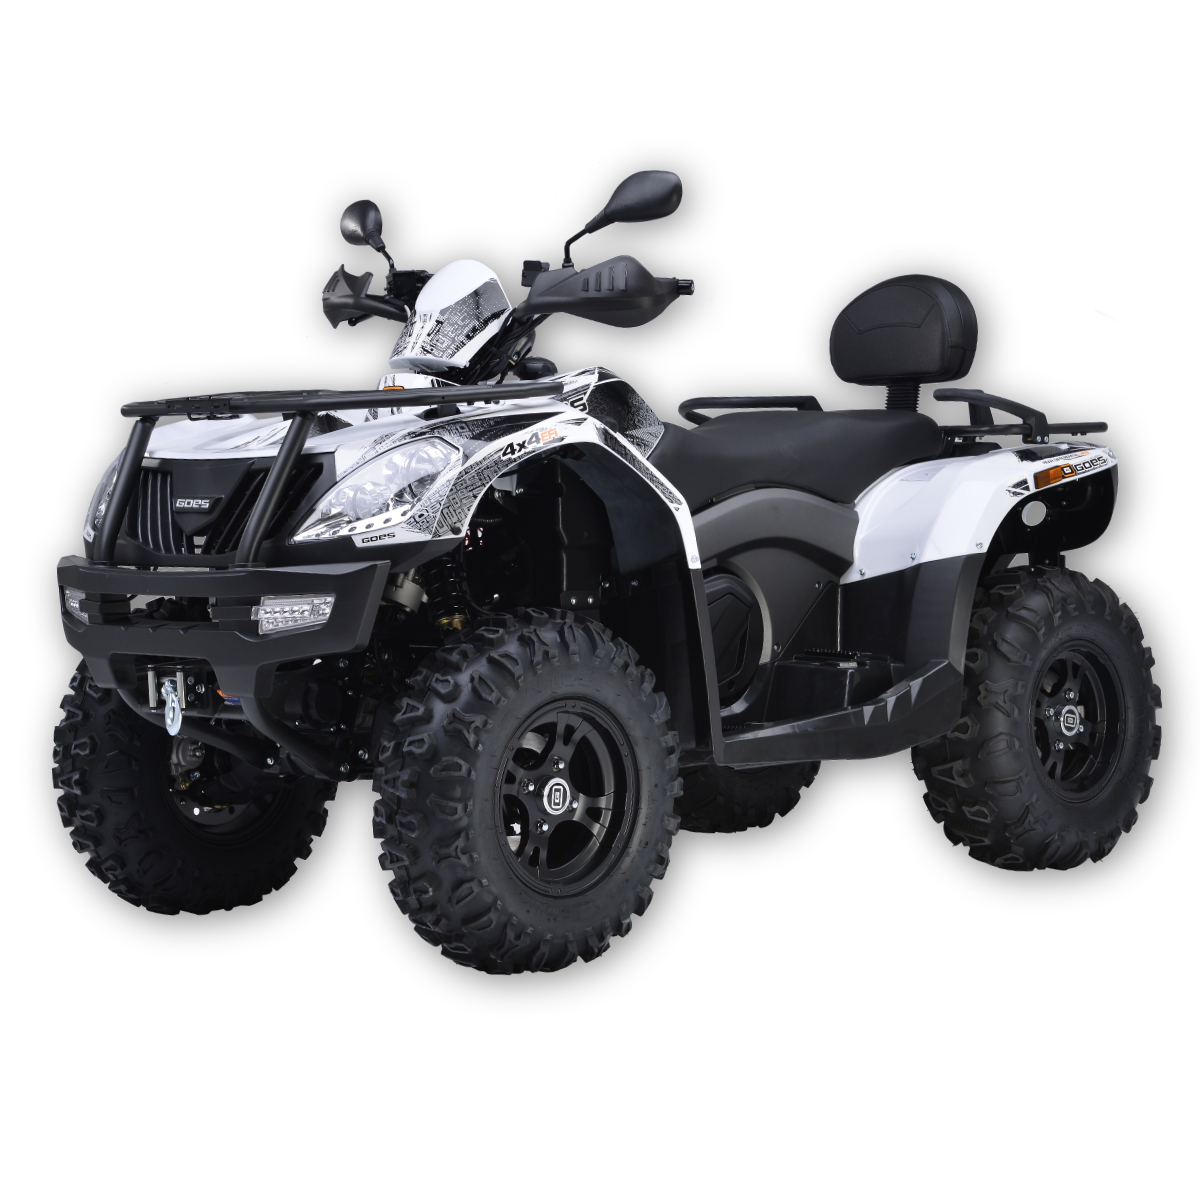 Goes Cobalt LTD 550i MAX 4x4 EURO4